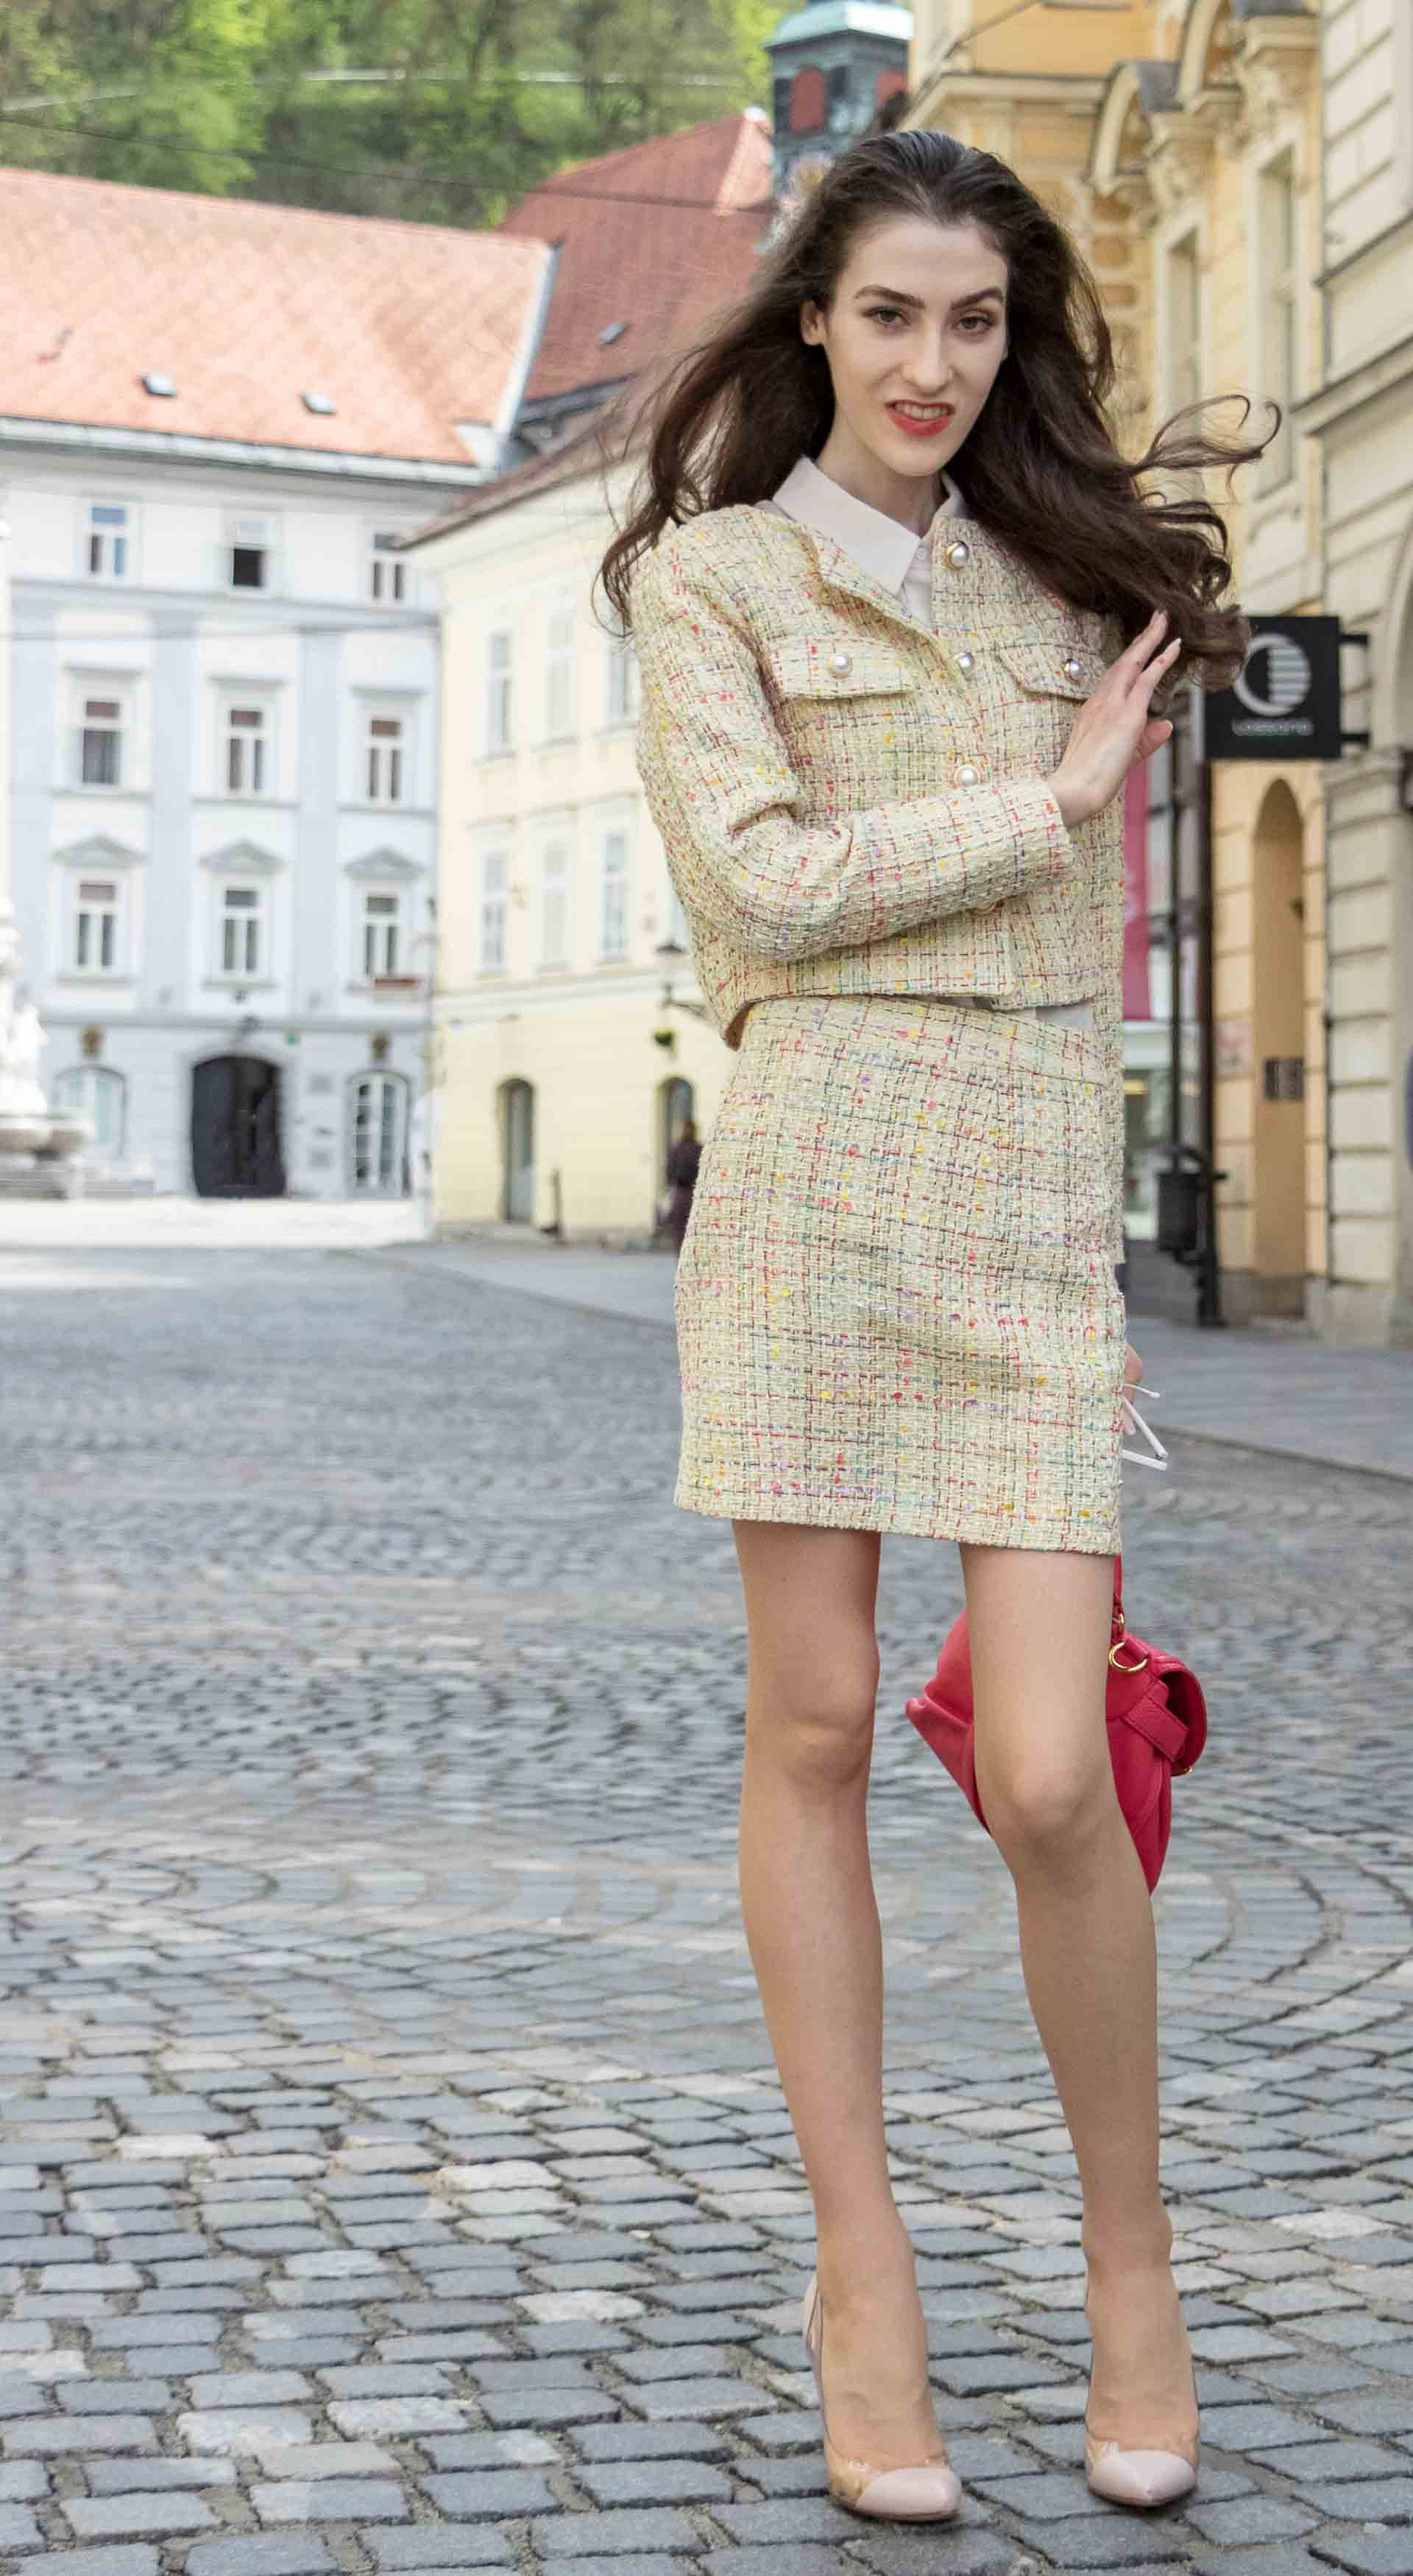 Fashion Blogger Veronika Lipar of Brunette from Wall Street dressed in Storets yellow tweed mini skirt suit, Gianvito Rossi plexi pumps, See by Chloe pink top handle bag, Adam Selman x Lespecs white Lolita sunglasses on the streets in Ljubljana